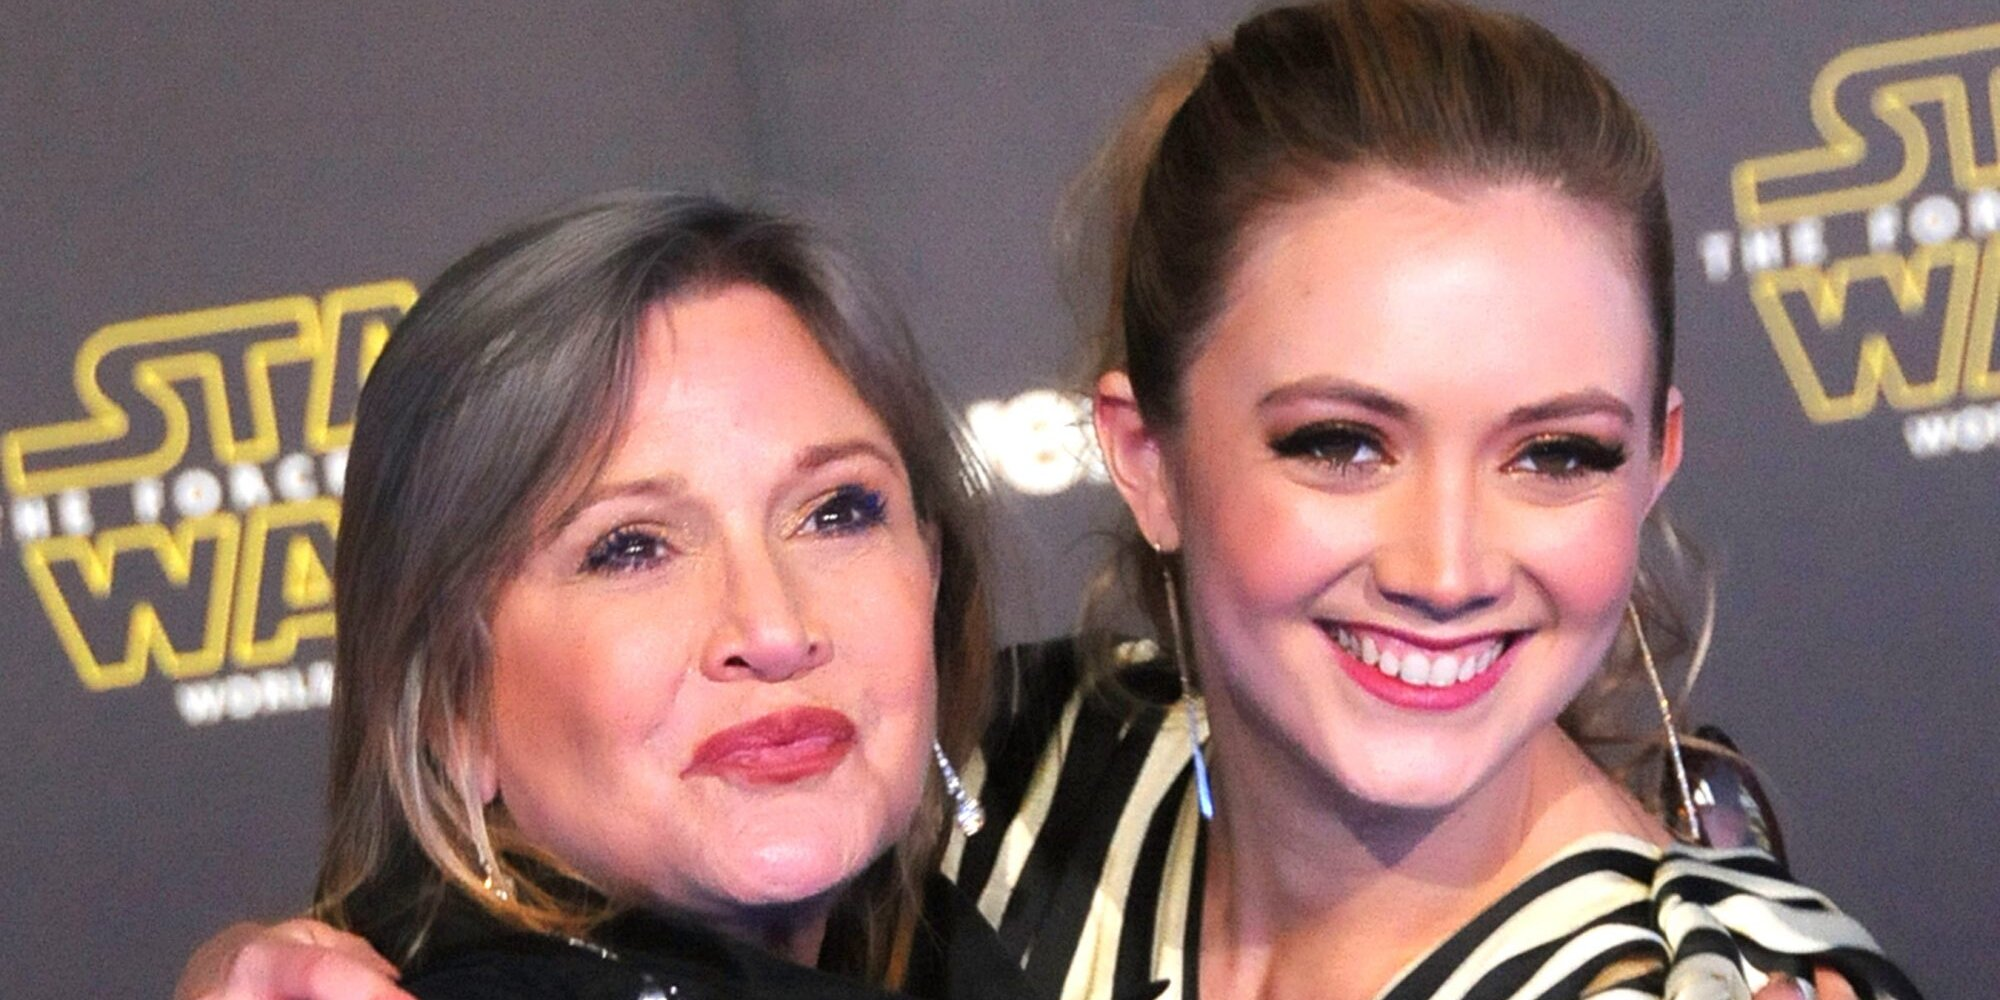 Billie Lourd shares photos of her son wearing a Princess Leia onesie in tribute to mom Carrie Fisher.jpg